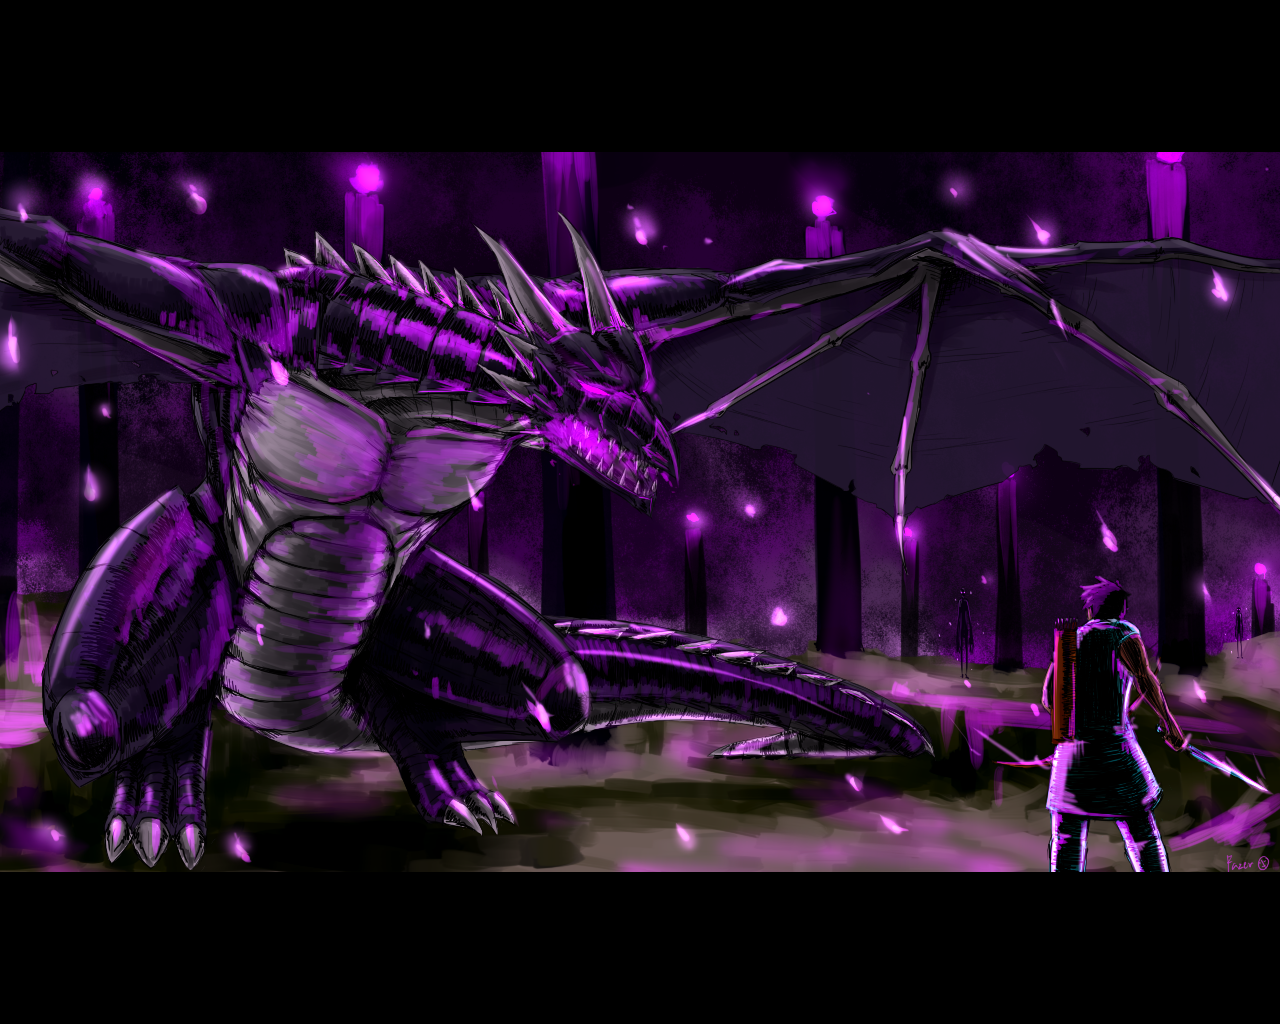 This is drawing about the battle of Enderdragon and Steve.